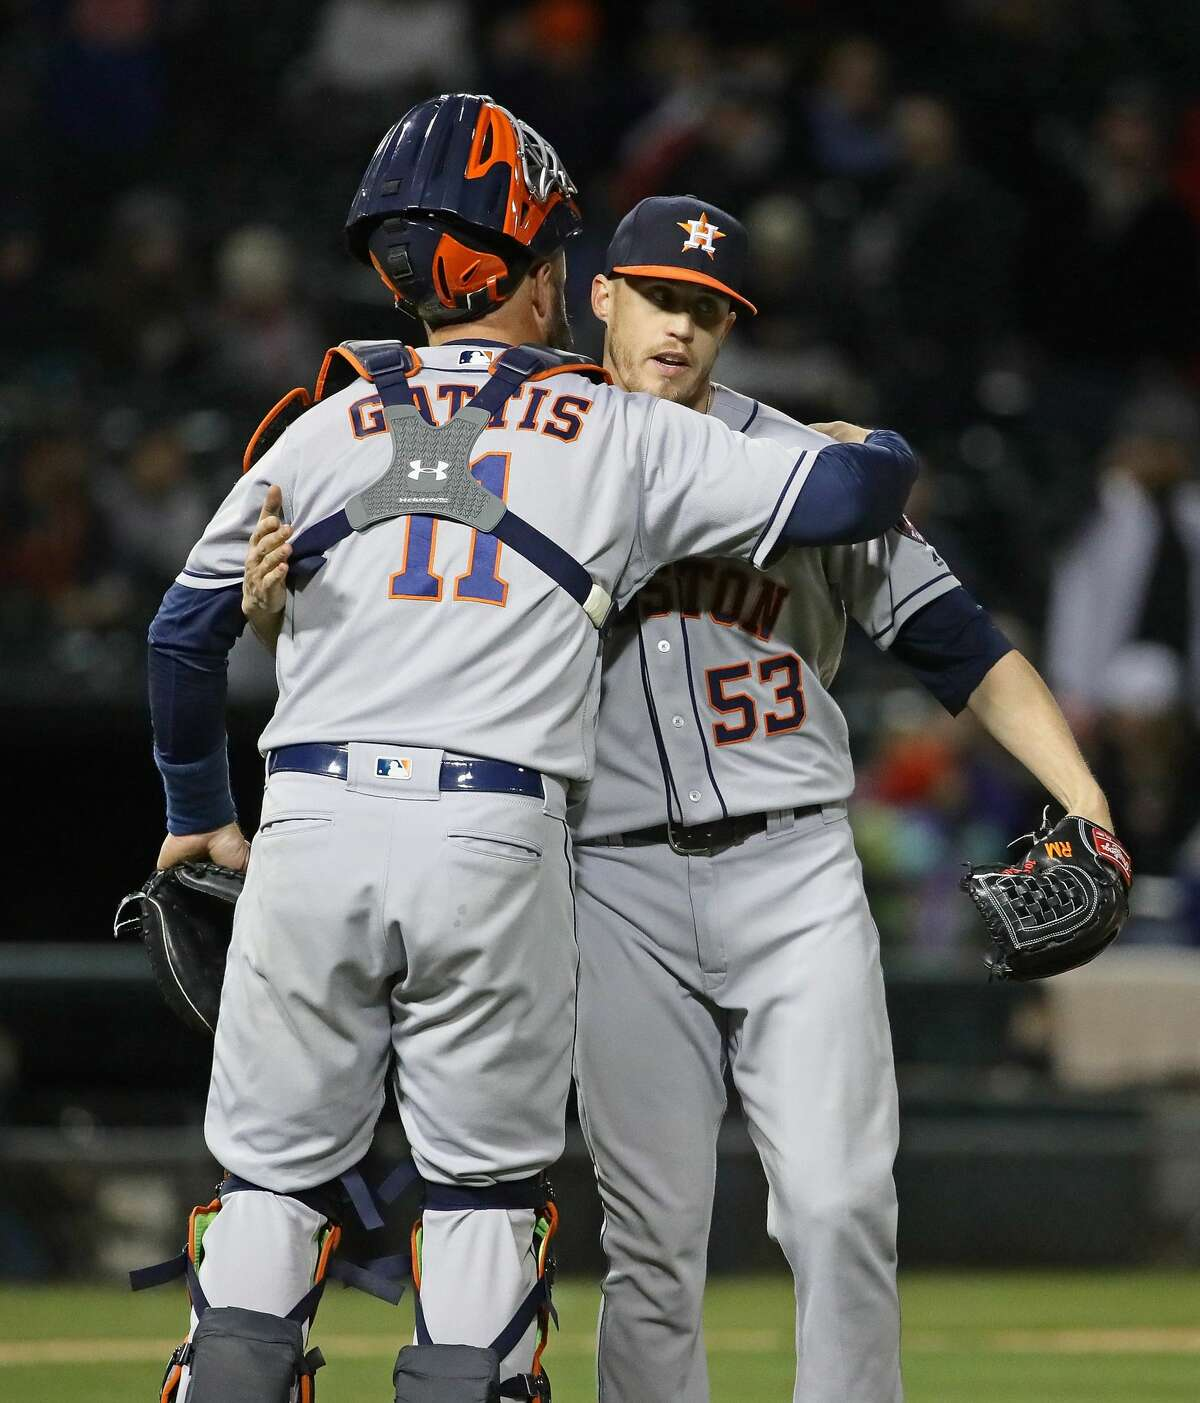 CHICAGO, IL - APRIL 20: Evan Gattis #11 and Ken Giles #53 of the Houston Astros celebrate a win over the Chicago White Sox at Guaranteed Rate Field on April 20, 2018 in Chicago, Illinois.The Astros defeated the White Sox 10-0. (Photo by Jonathan Daniel/Getty Images)